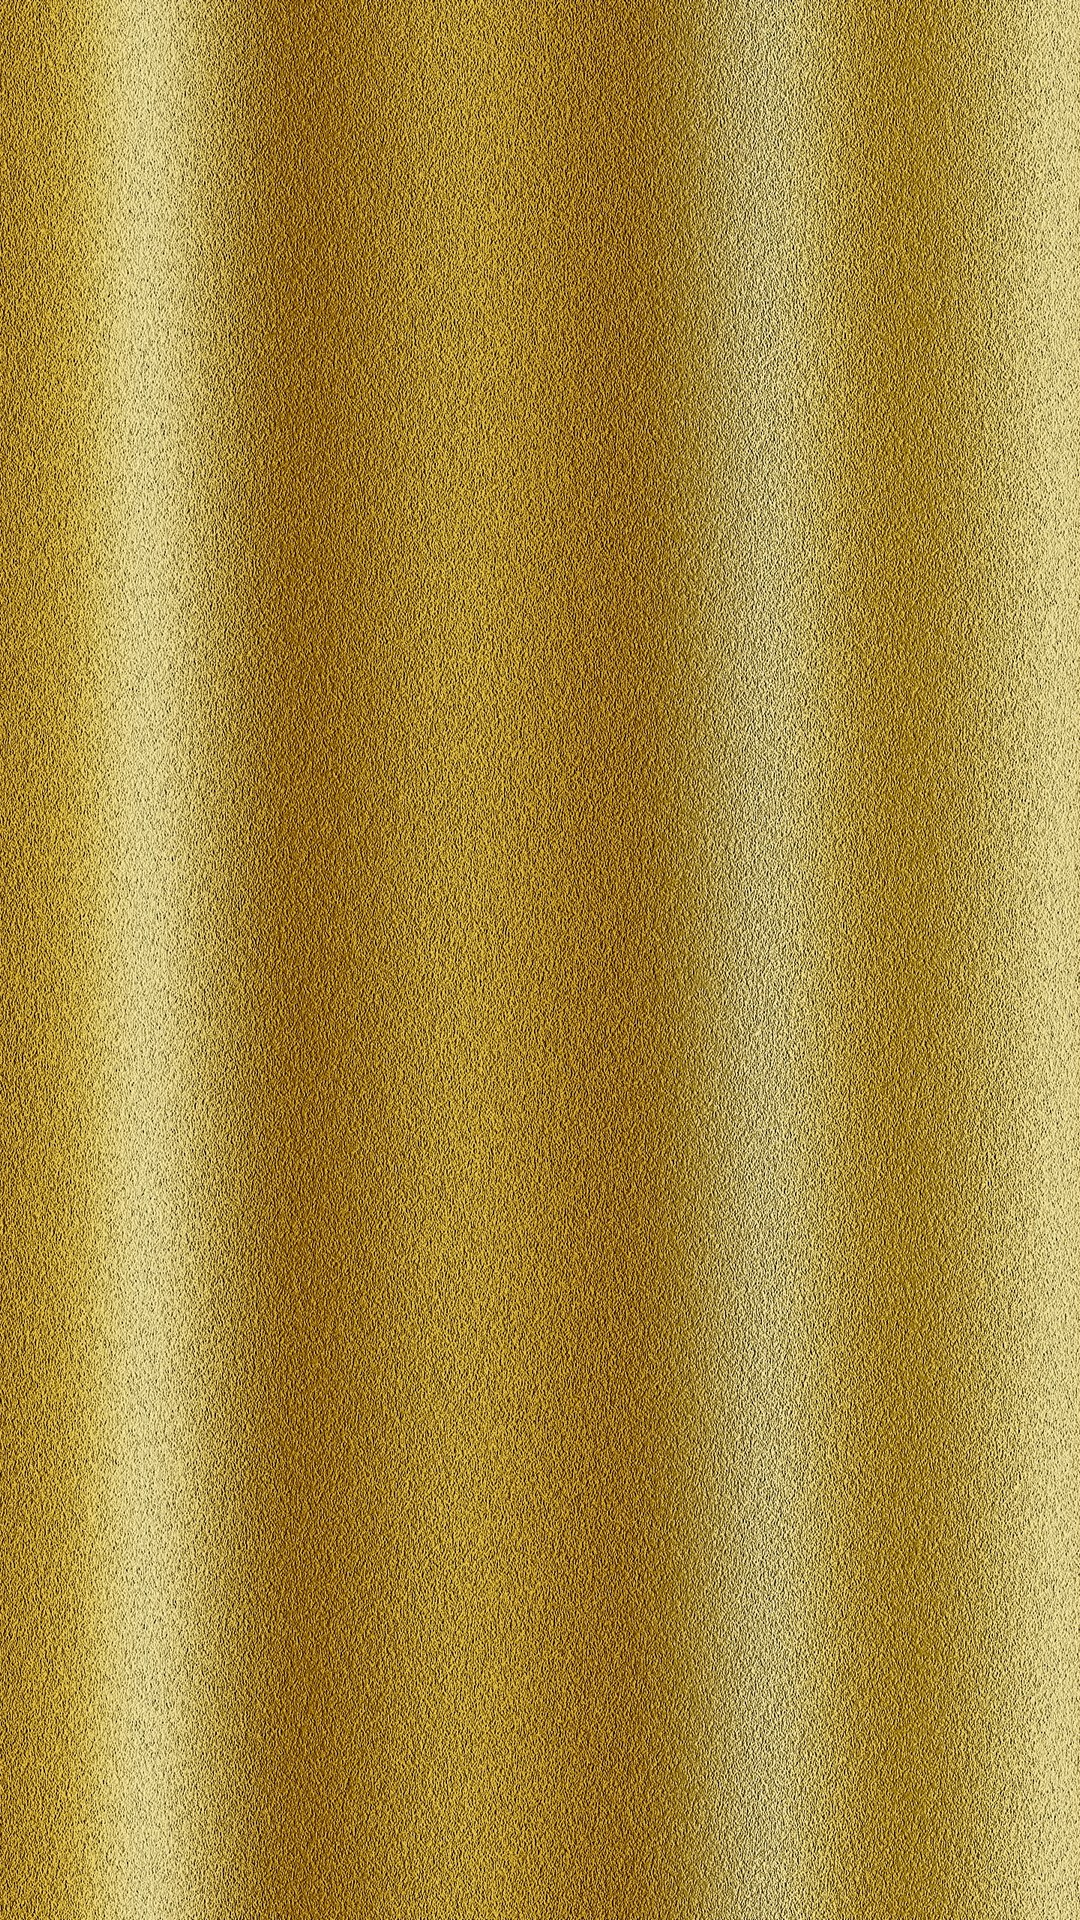 Metallic Gold Android Wallpaper With Hd ...